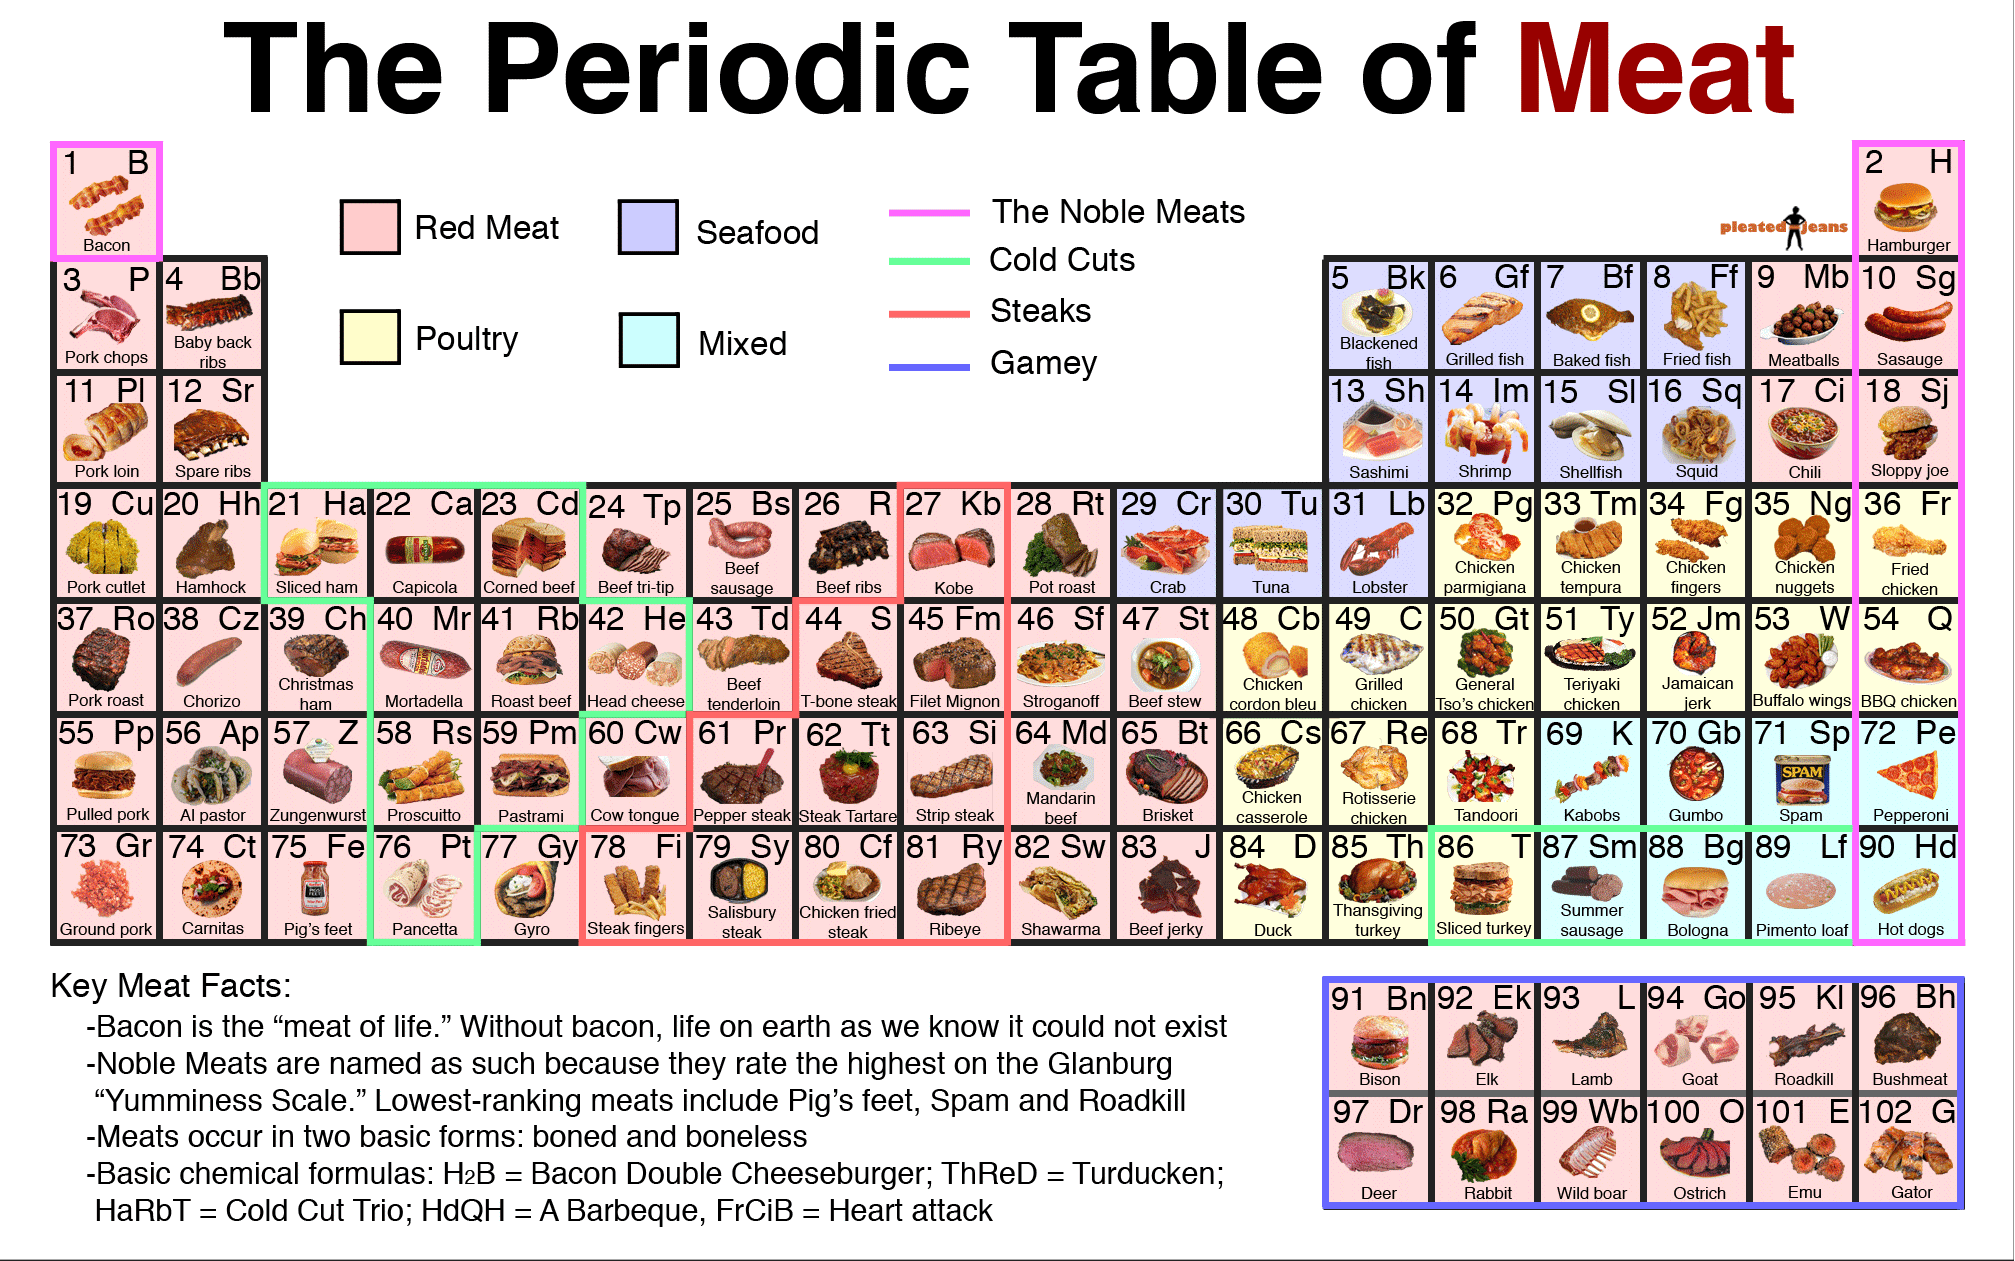 From http://www.pleated-jeans.com/2010/07/12/the-periodic-table-of-meat-image/